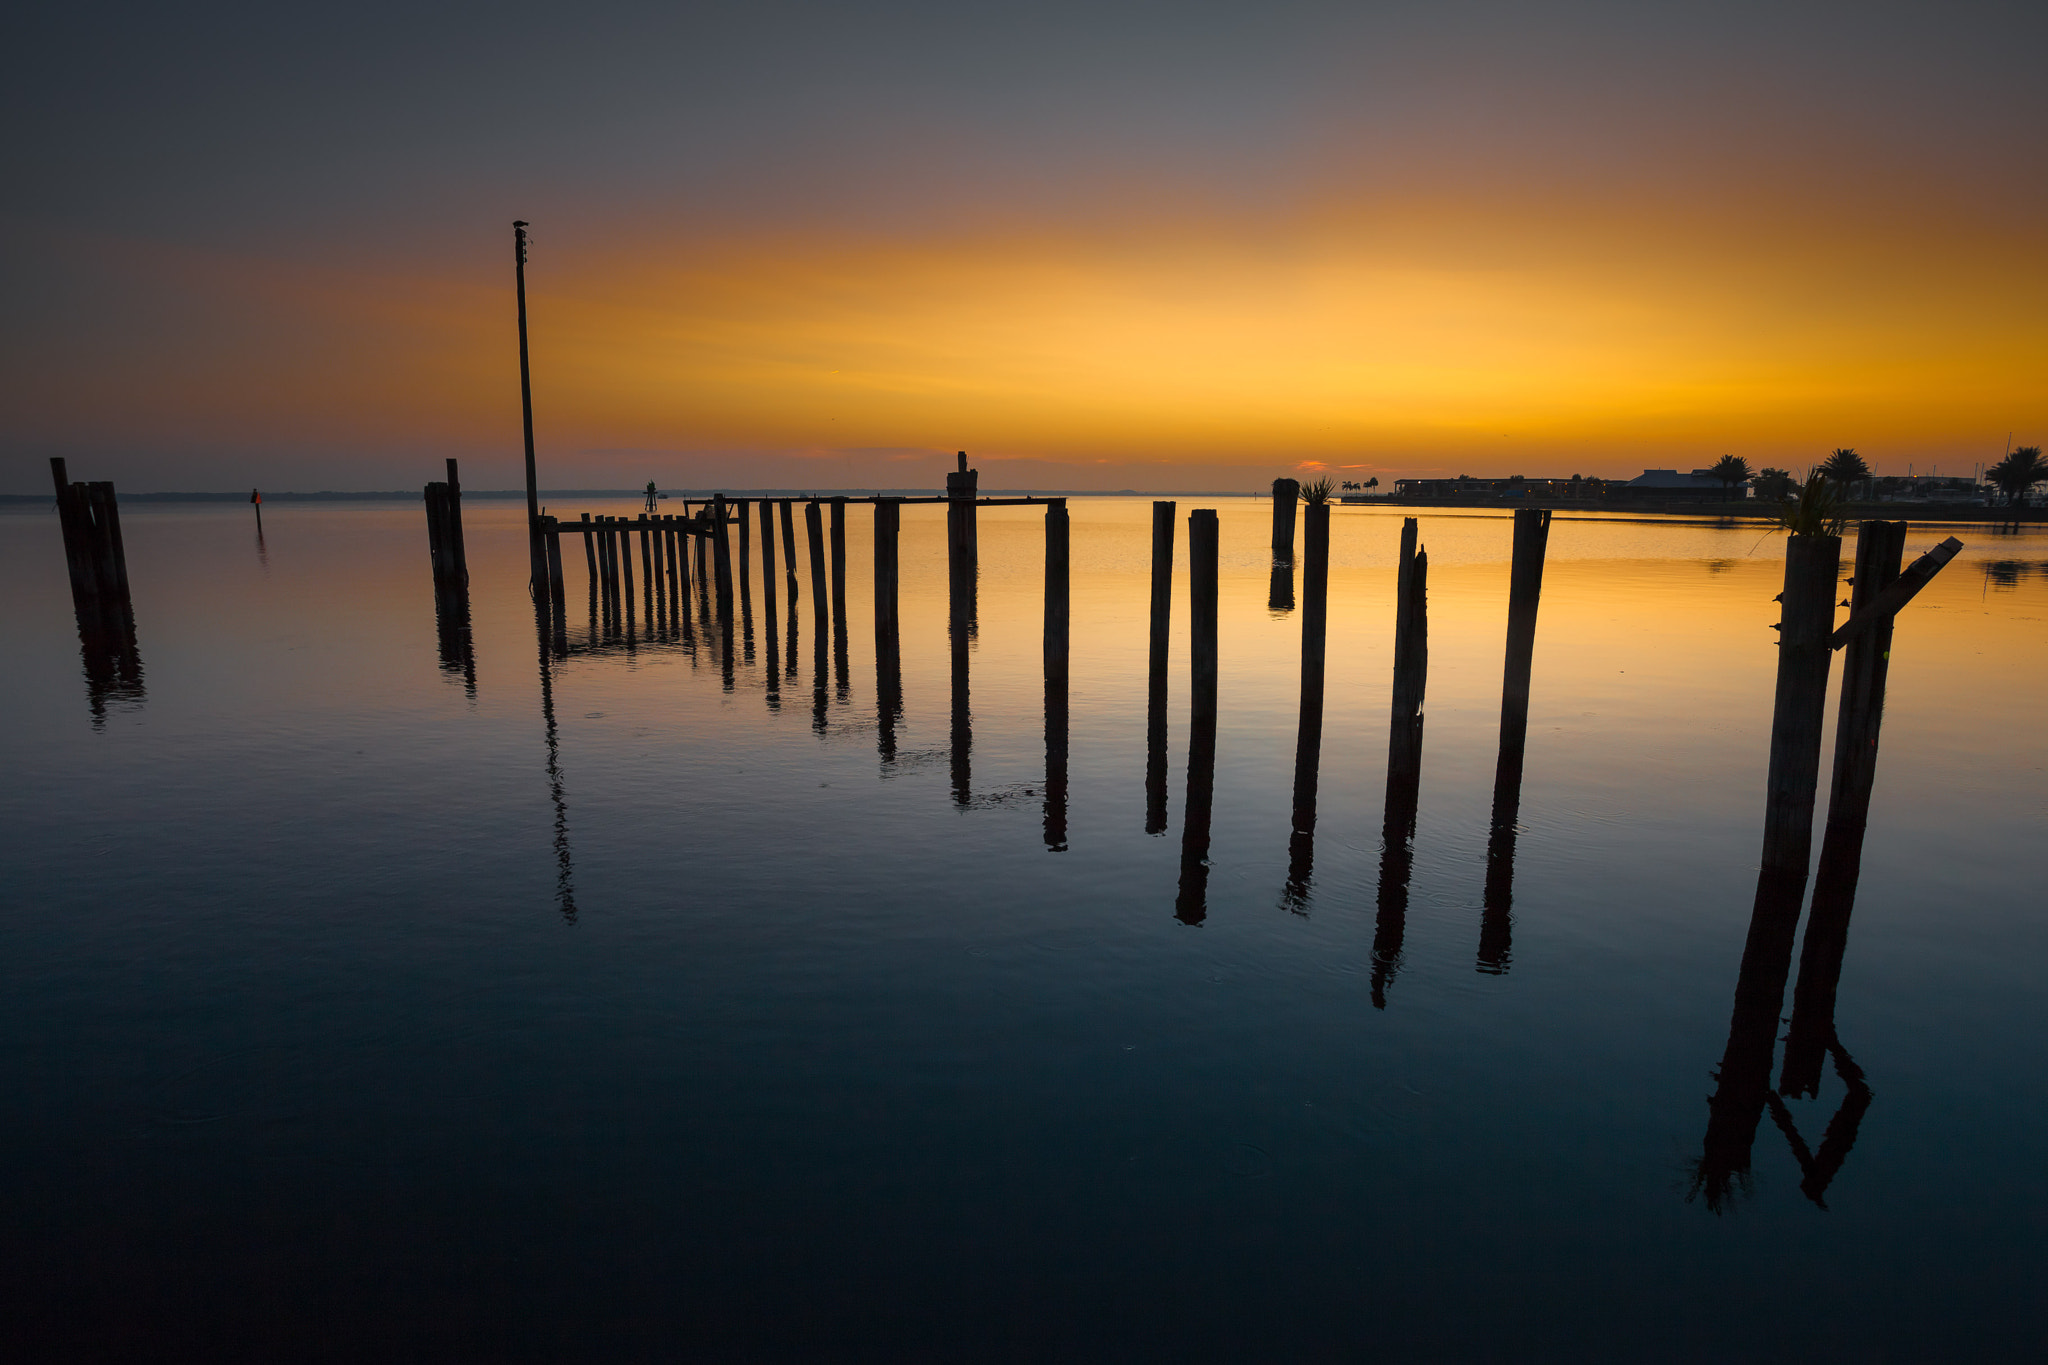 Photograph Silence Morning by George Bloise on 500px